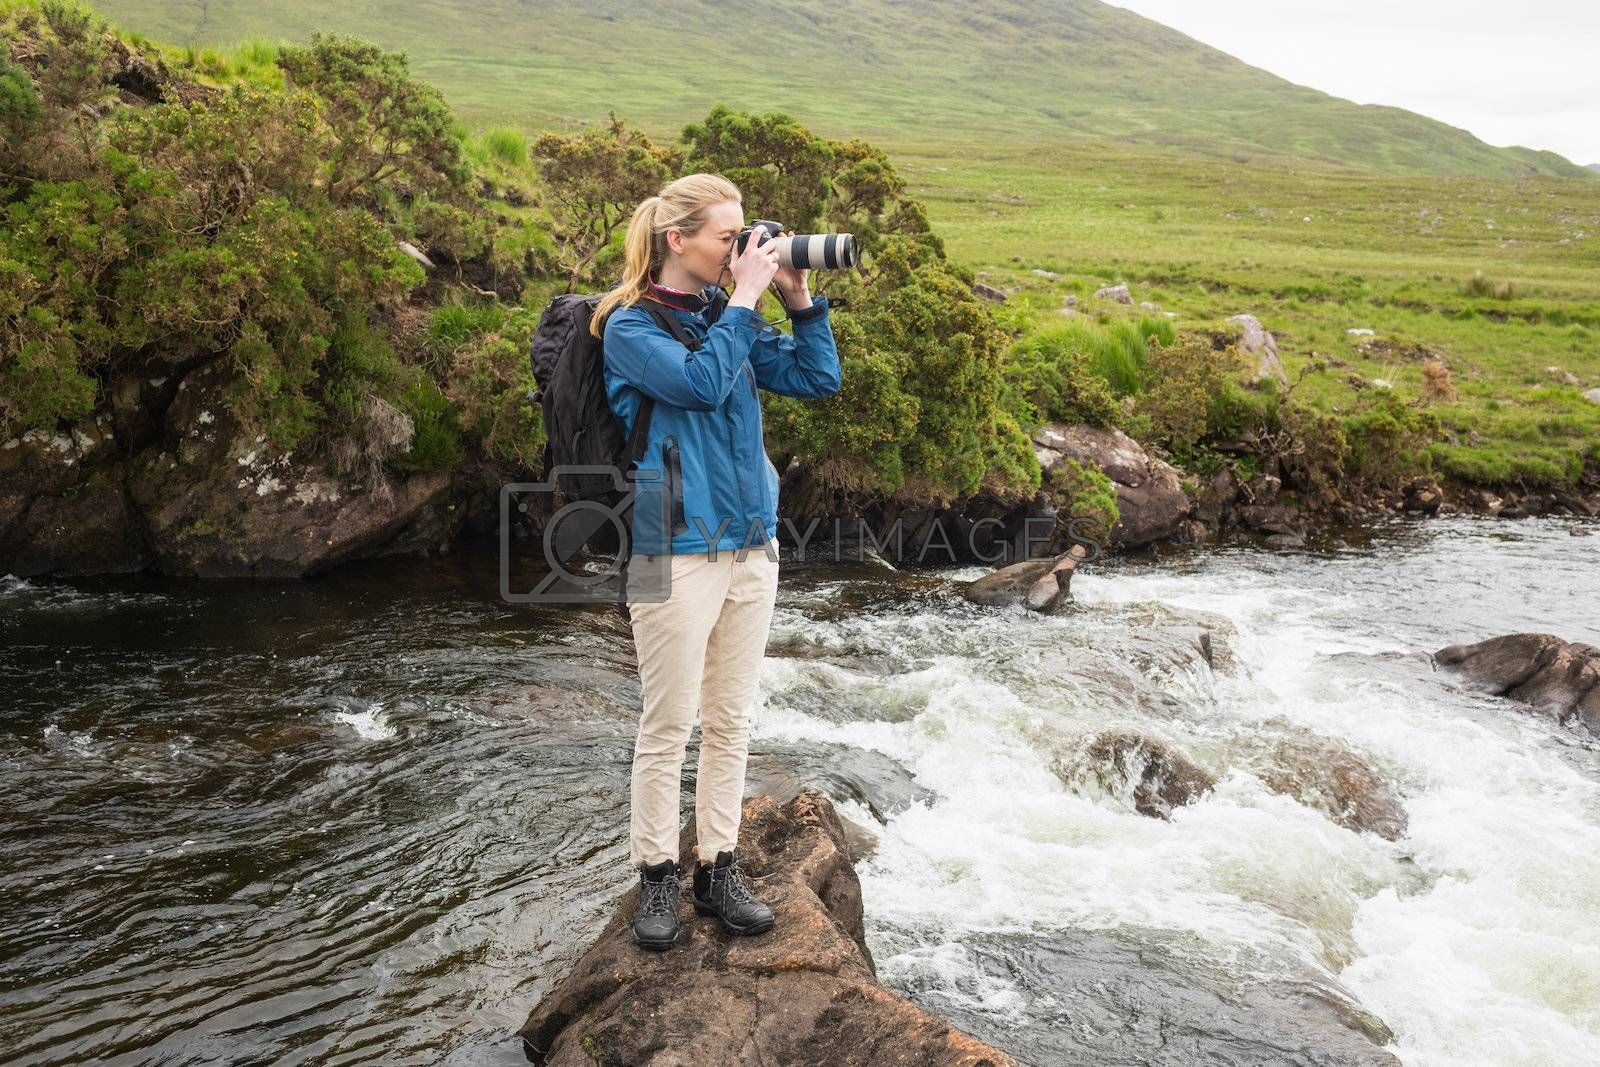 Blonde woman standing on a rock in a stream taking a photo by Wavebreakmedia